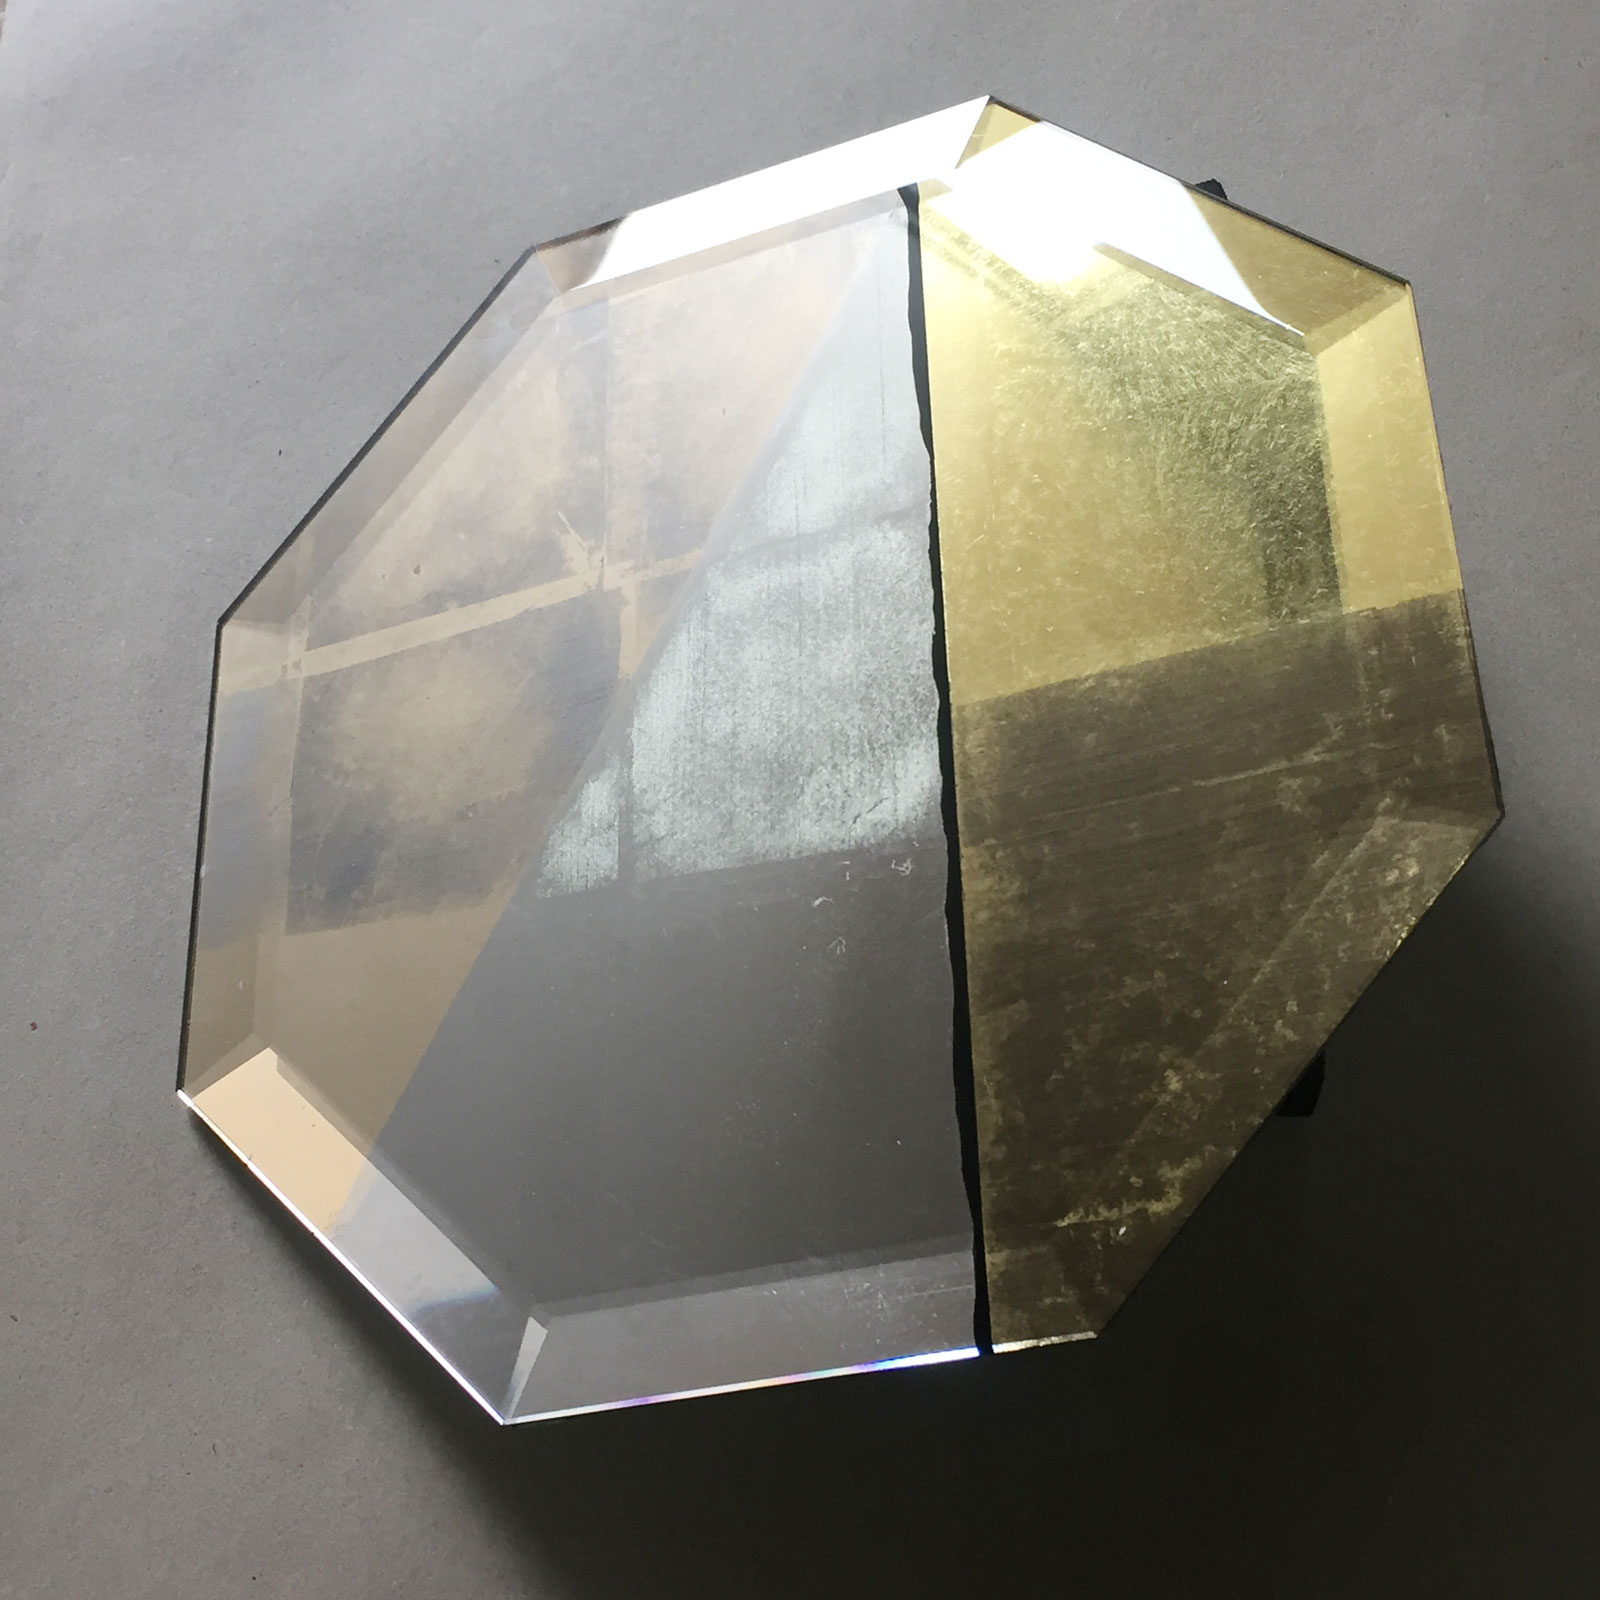 Octagonal bevelled glass hand gilded with 3 types of gold